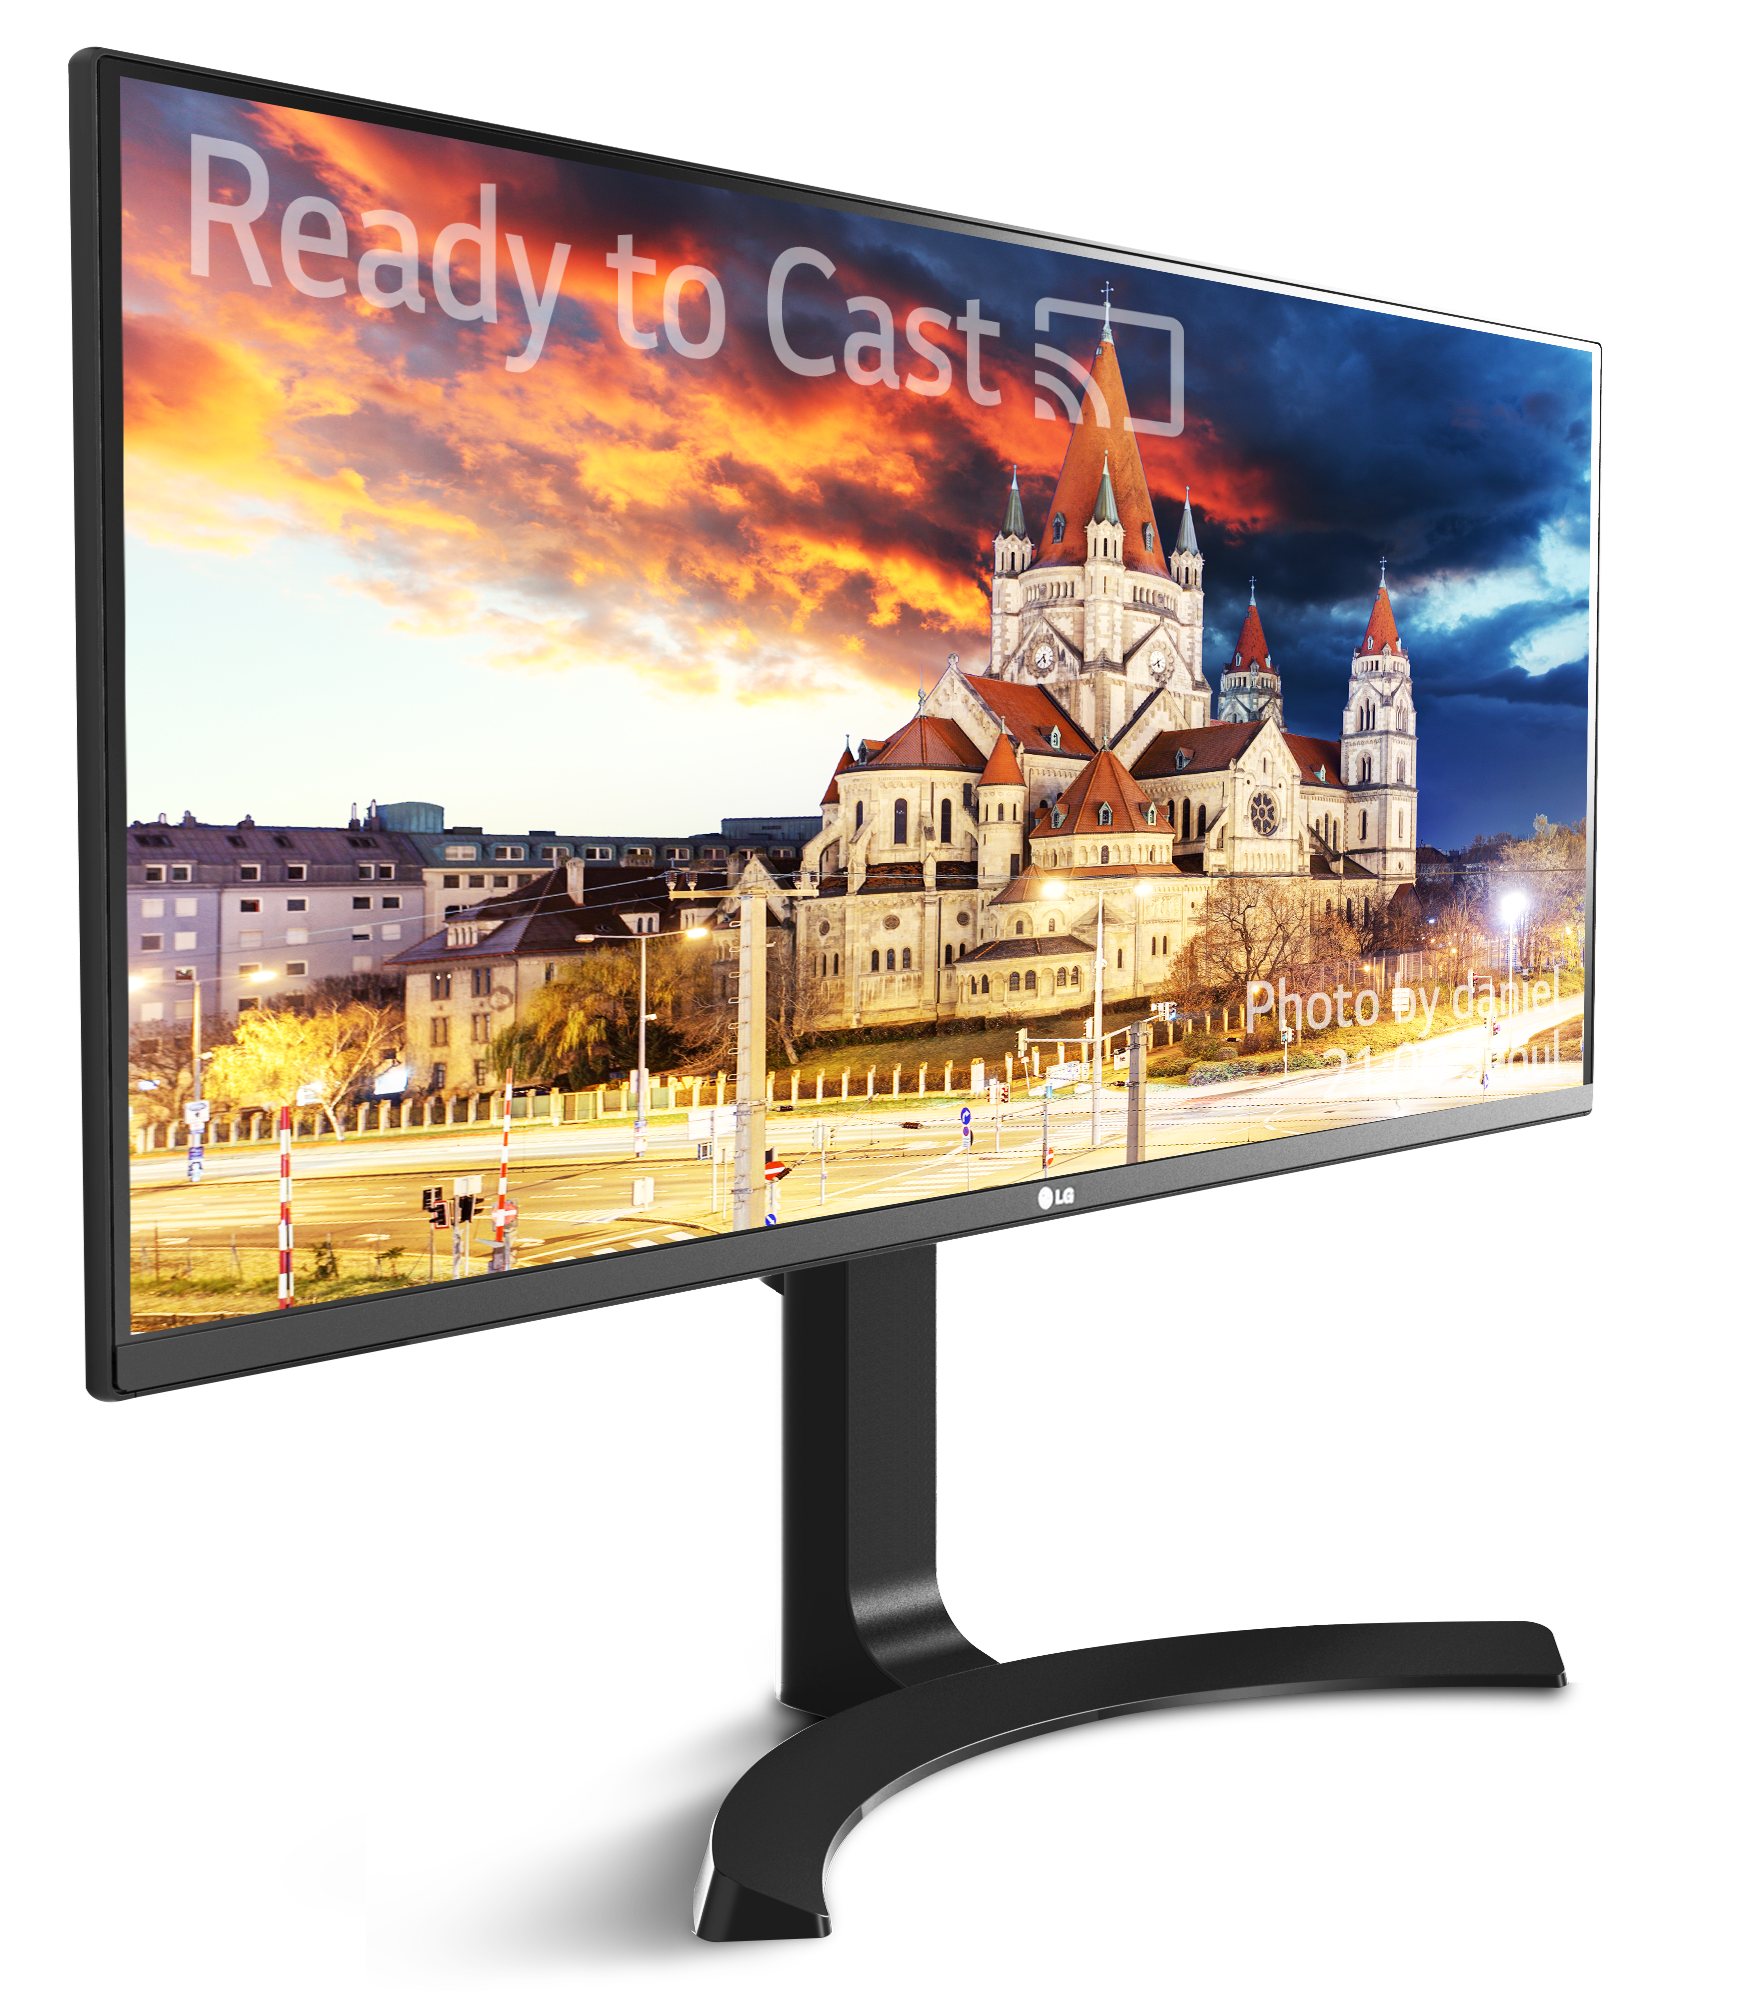 Front view of the LG 21:9 ULTRAWIDE MOBILE+ MONITOR facing 20 degrees to the right